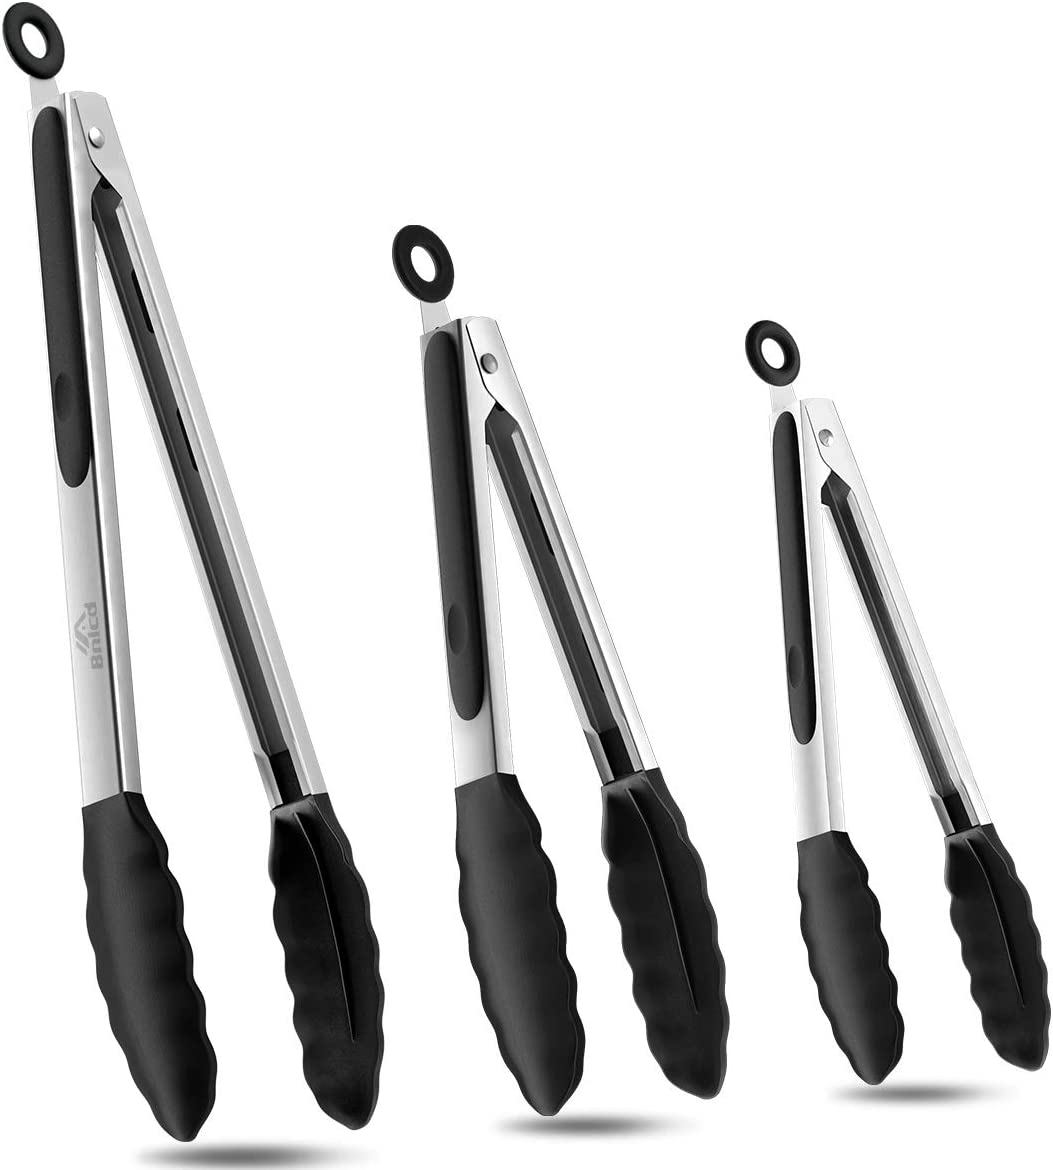 Bnlcd Kitchen Tongs, Premium Stainless Steel Locking Cooking Tongs with Silicone Tips, Non-Slip Food Tongs for Cooking, Heavy Duty, Non-Stick, 480℉, Set of 3-7